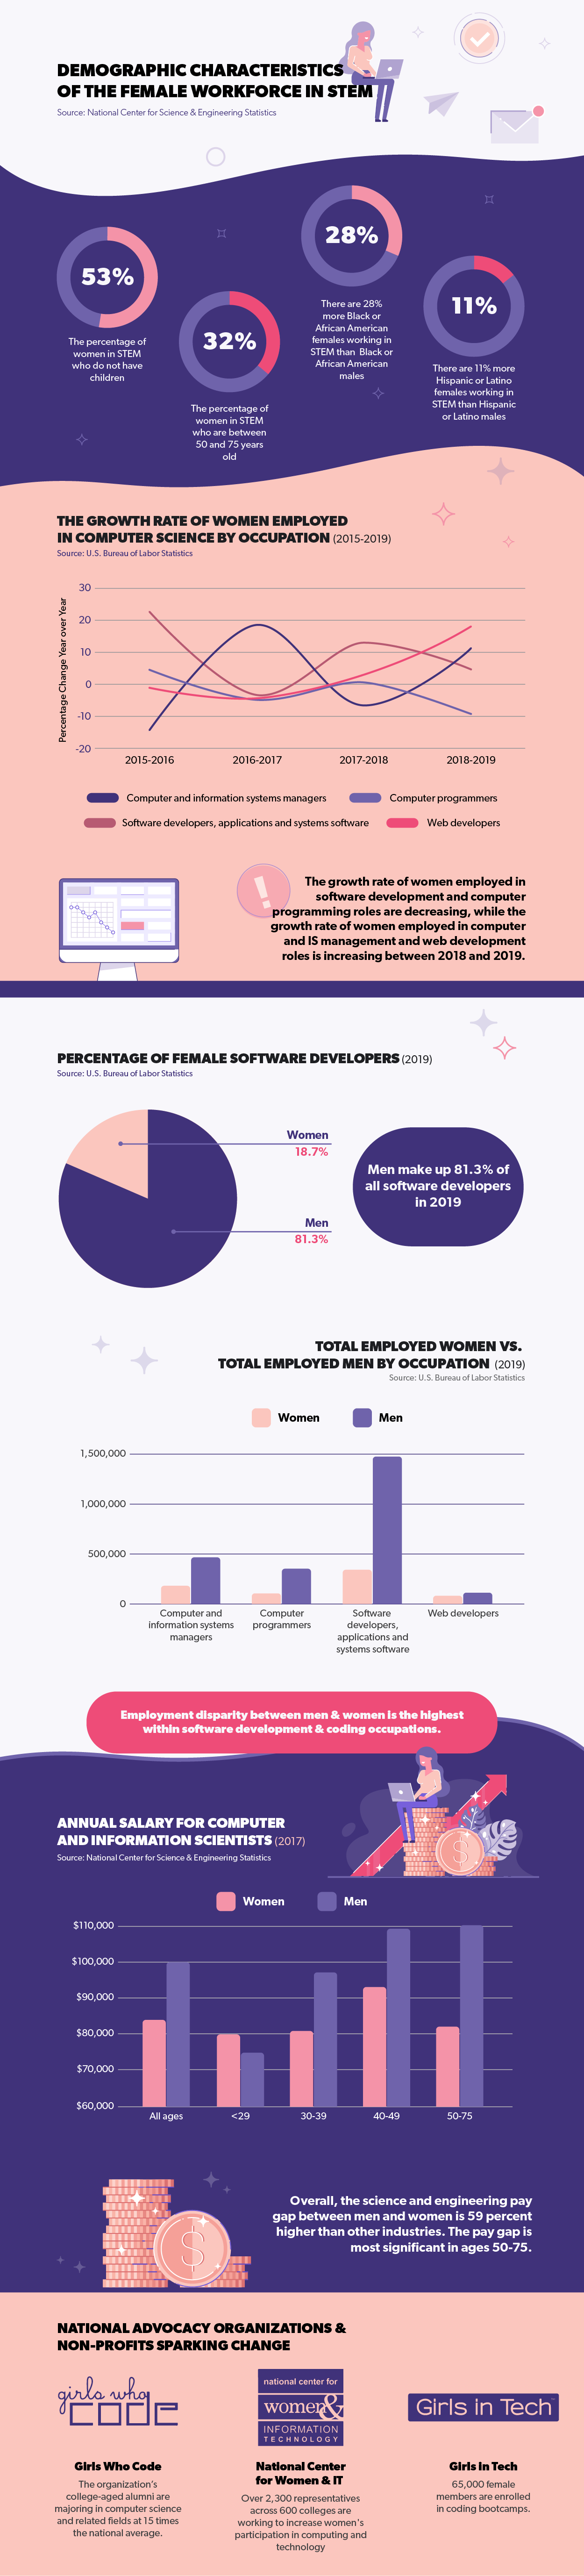 Demographic Characteristics of the Female Workforce in STEM